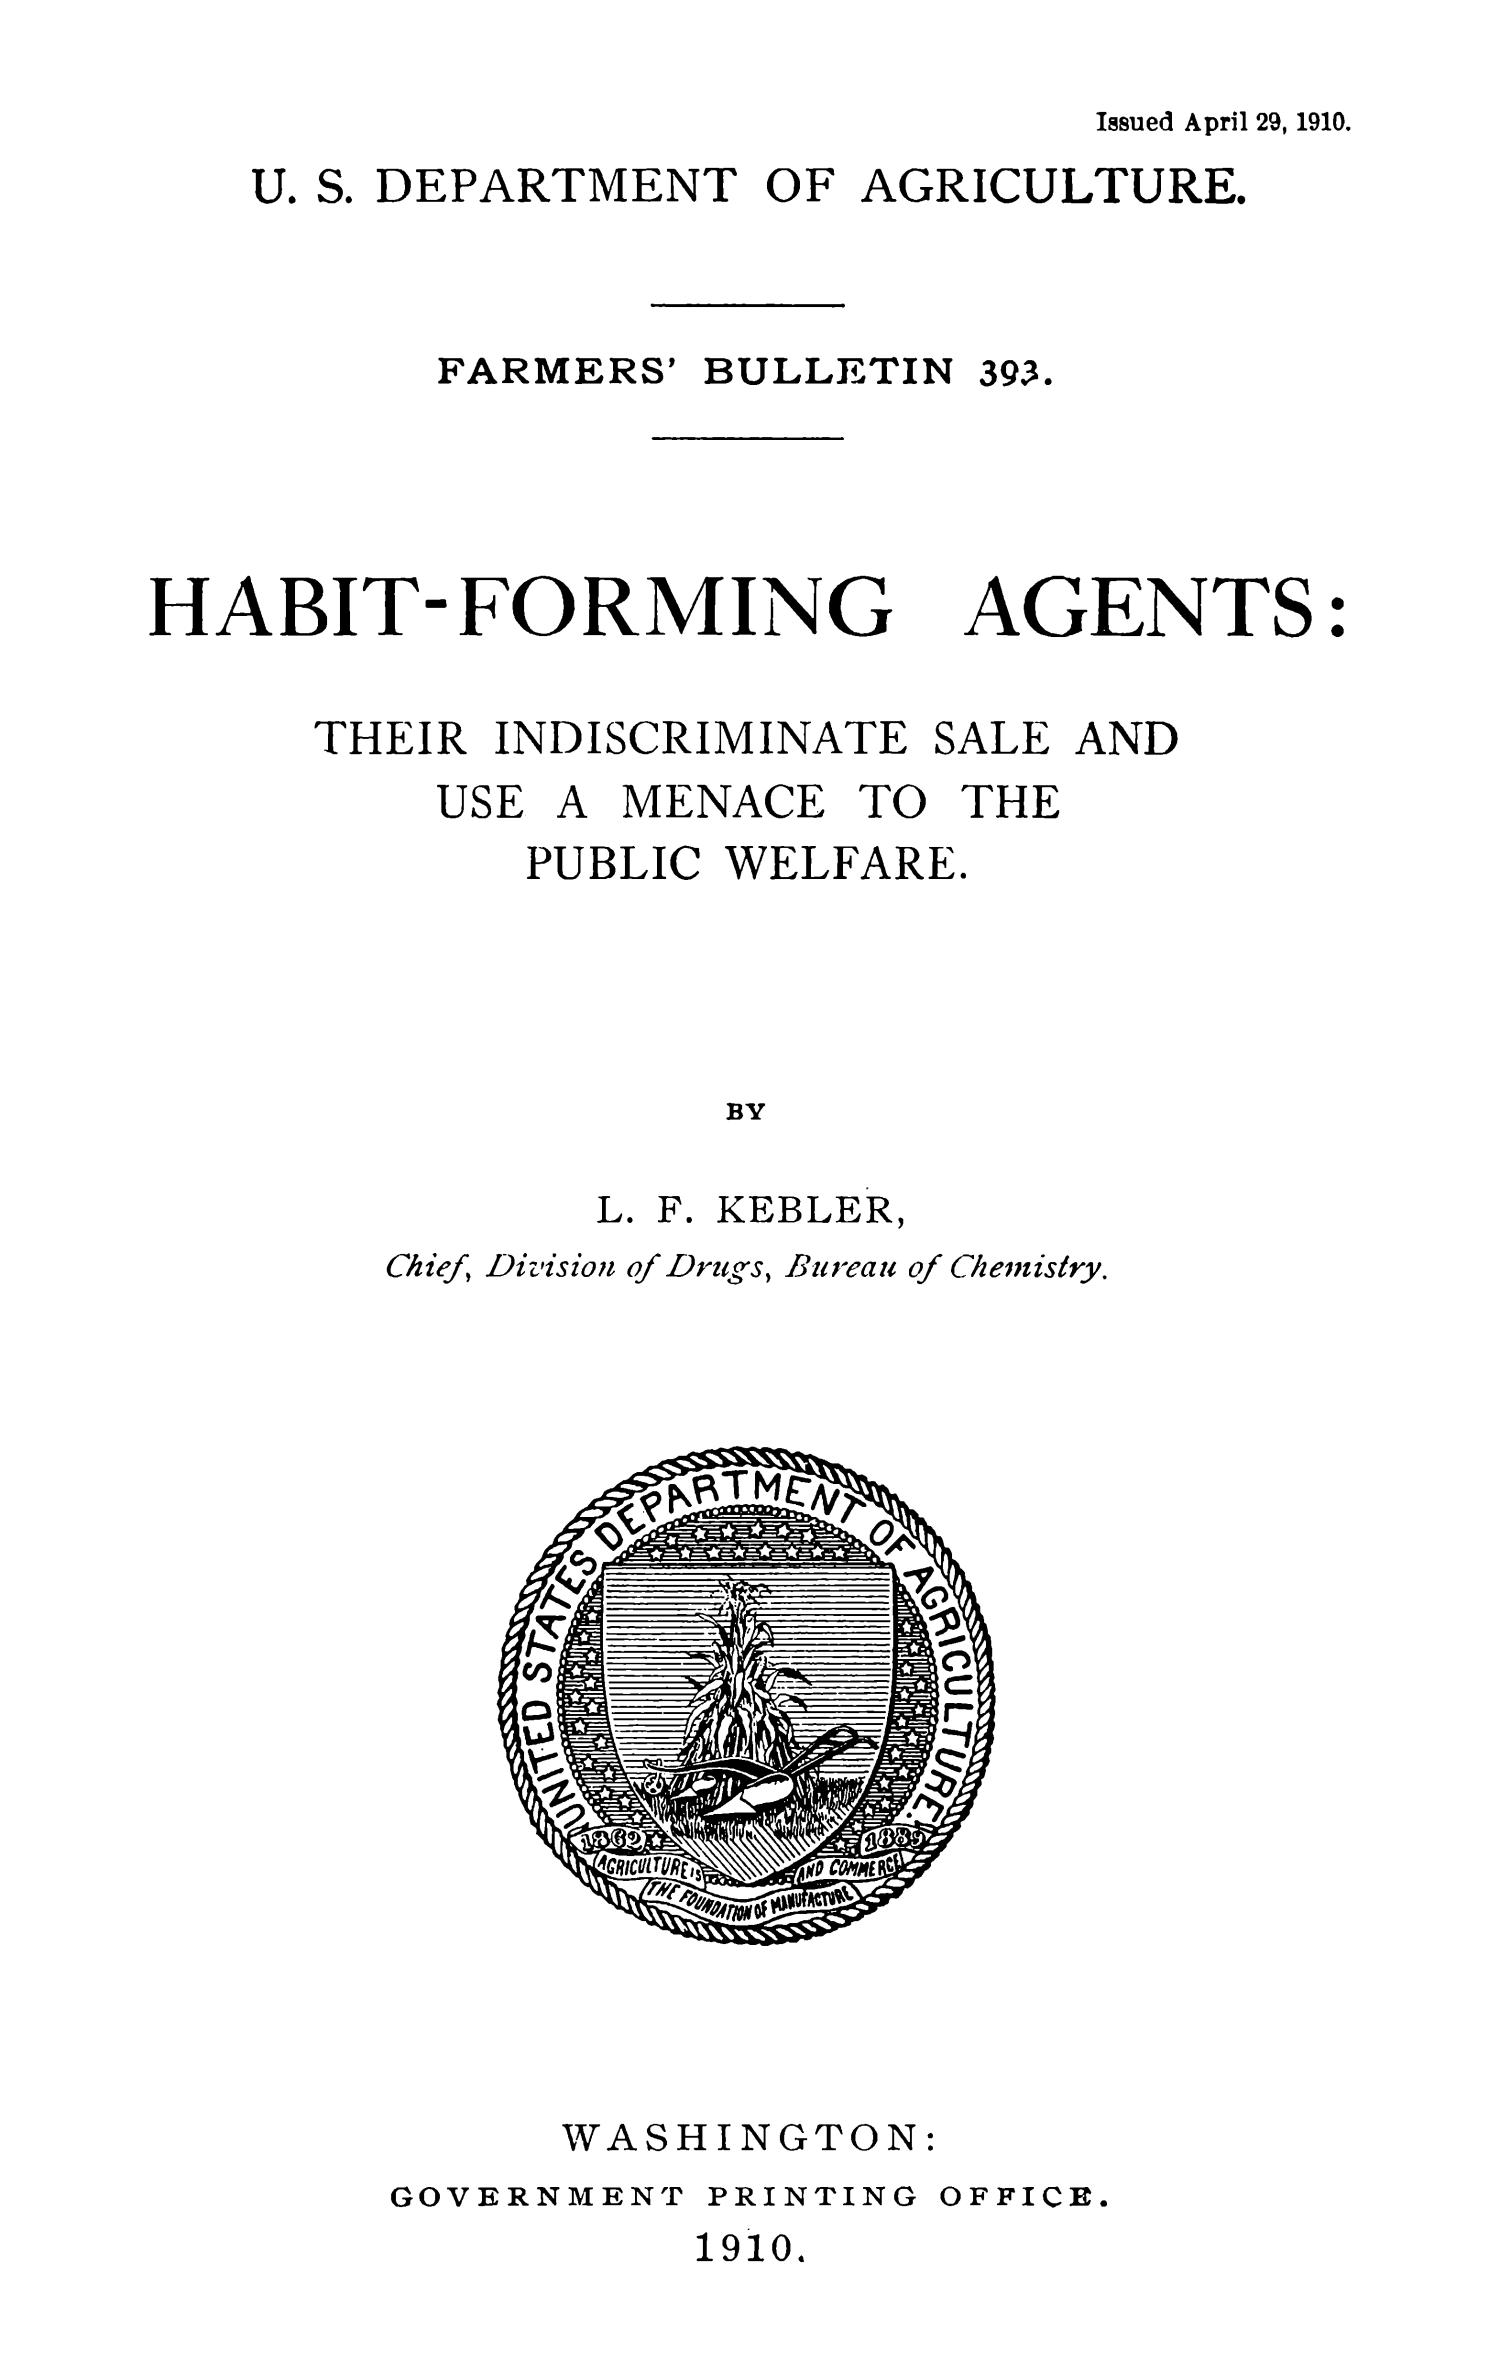 Habit-Forming Agents: Their Indiscriminate Sale and Use a Menace to the Public Welfare                                                                                                      Title Page